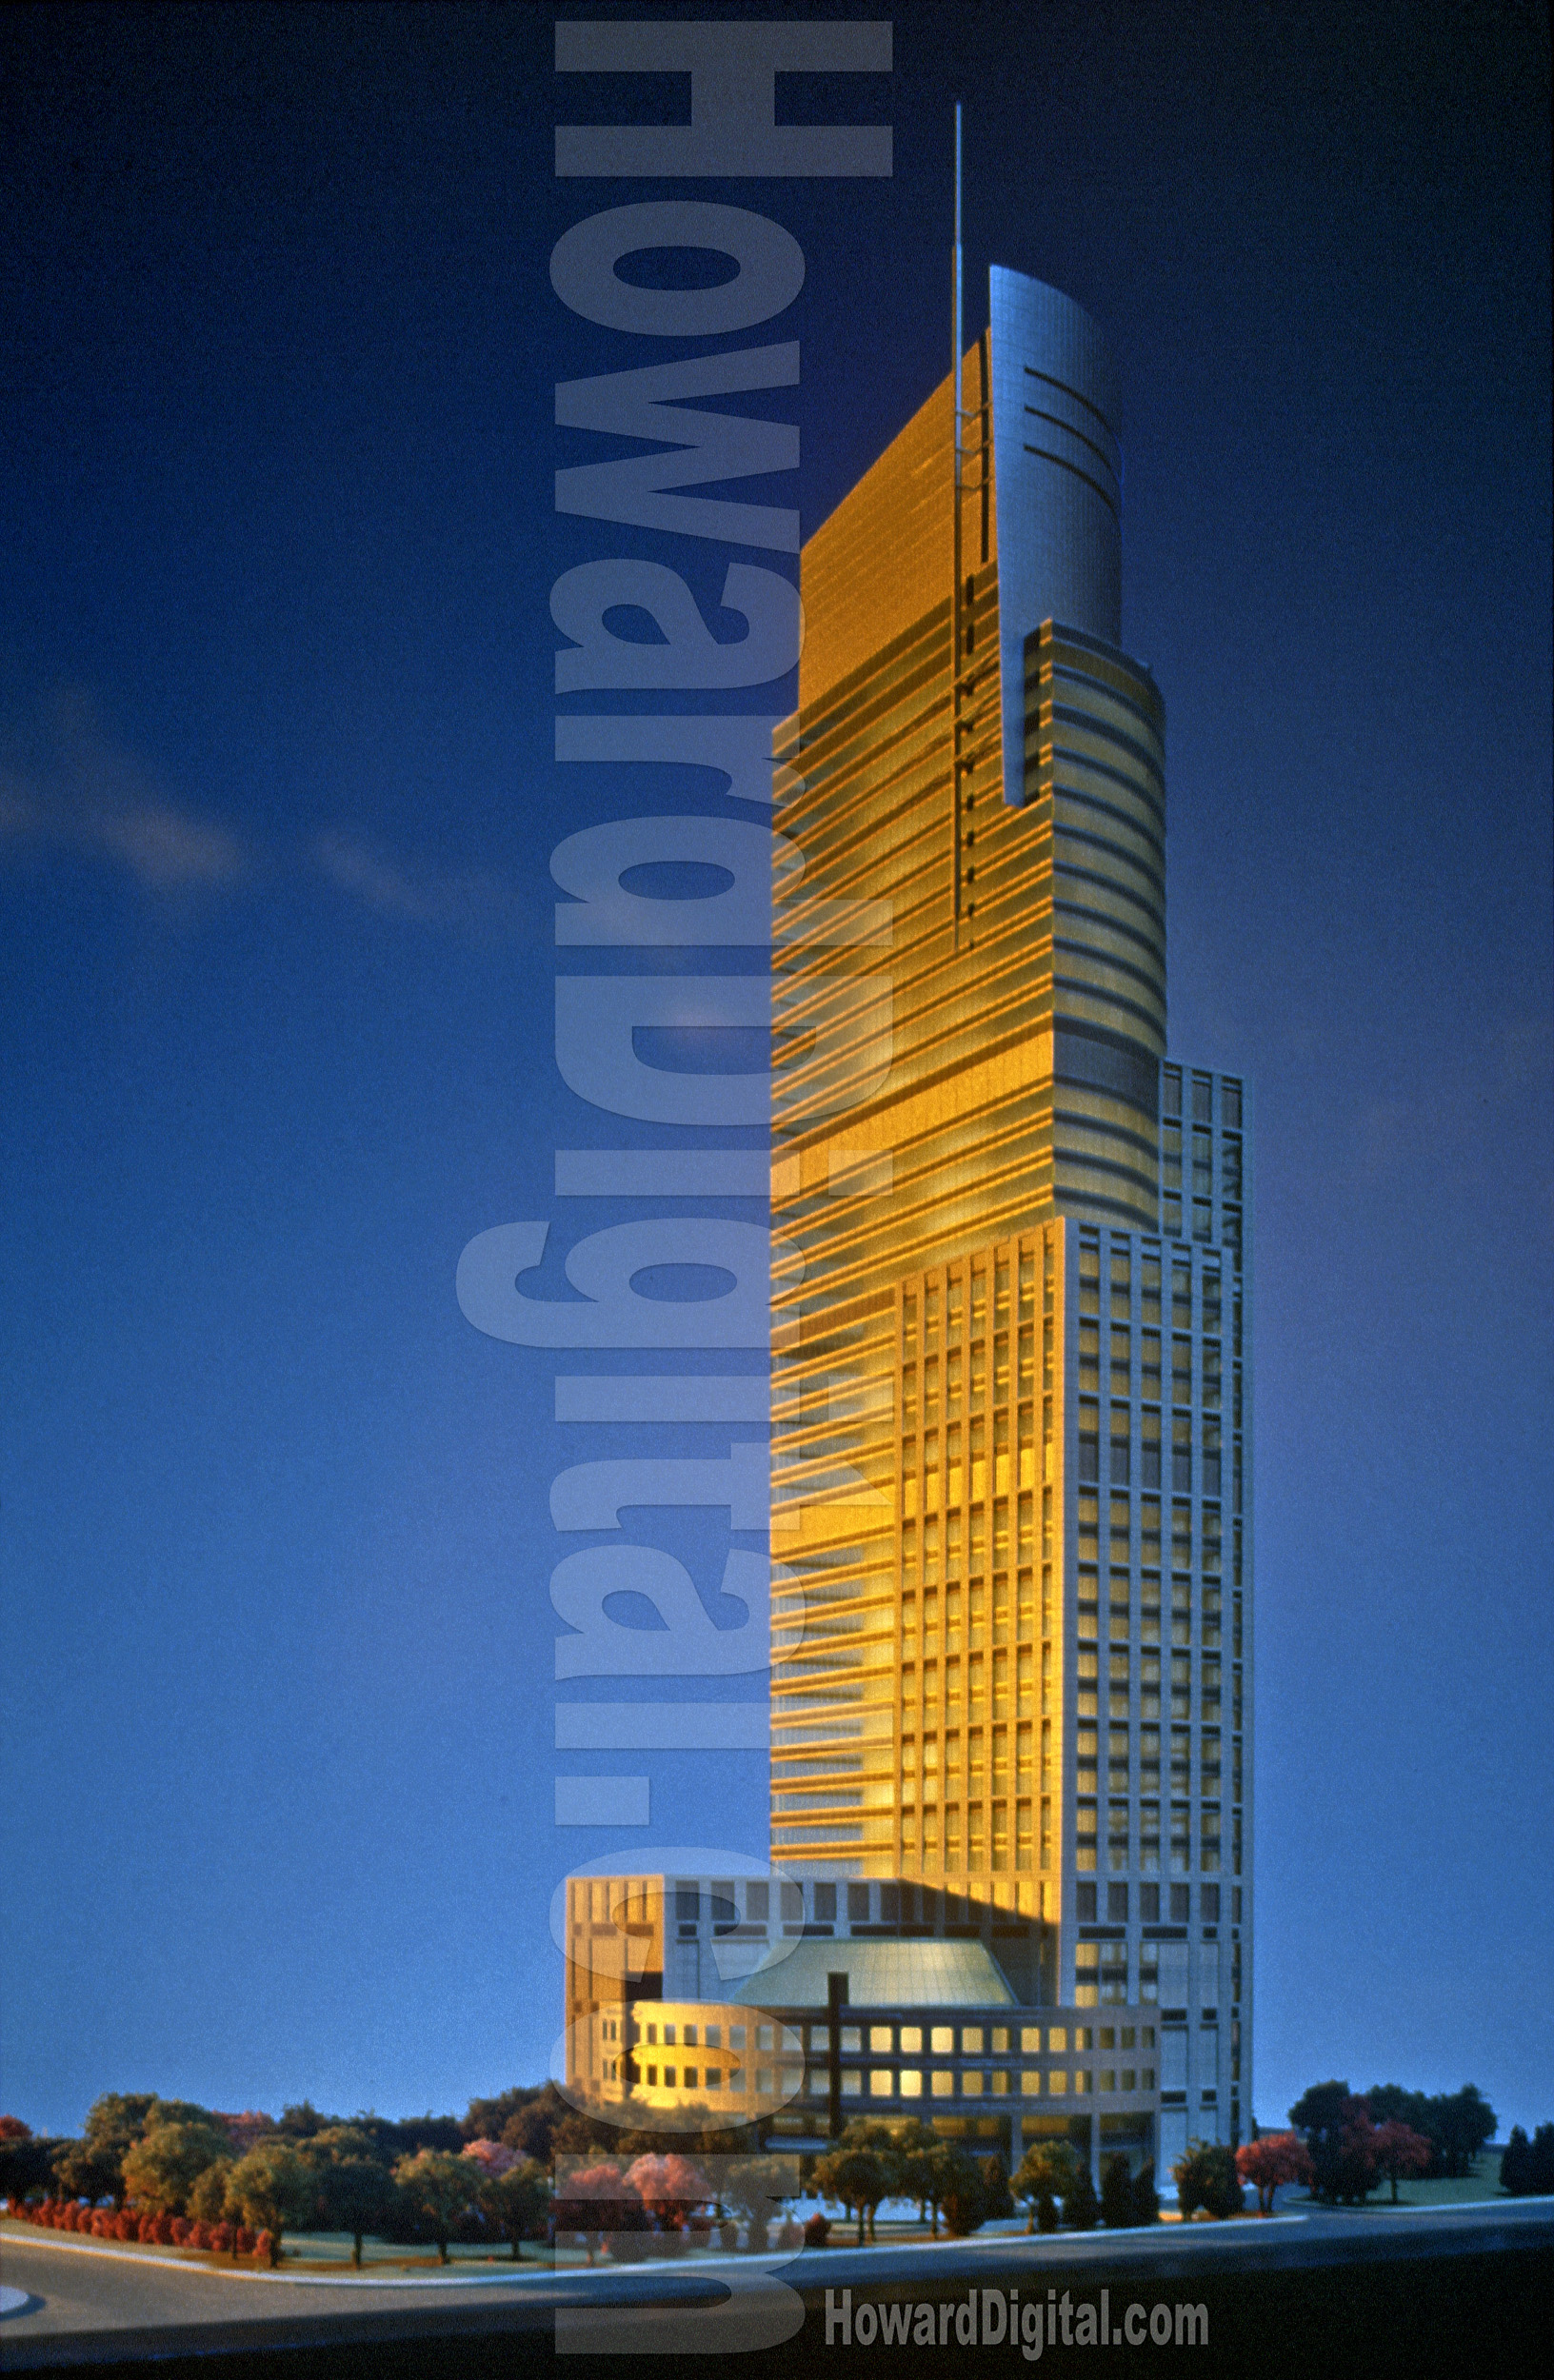 http://www.howardmodels.com/Architectural-Scale-Models/RTKL-Daewoo/warsaw-trade-tower-lg.jpg